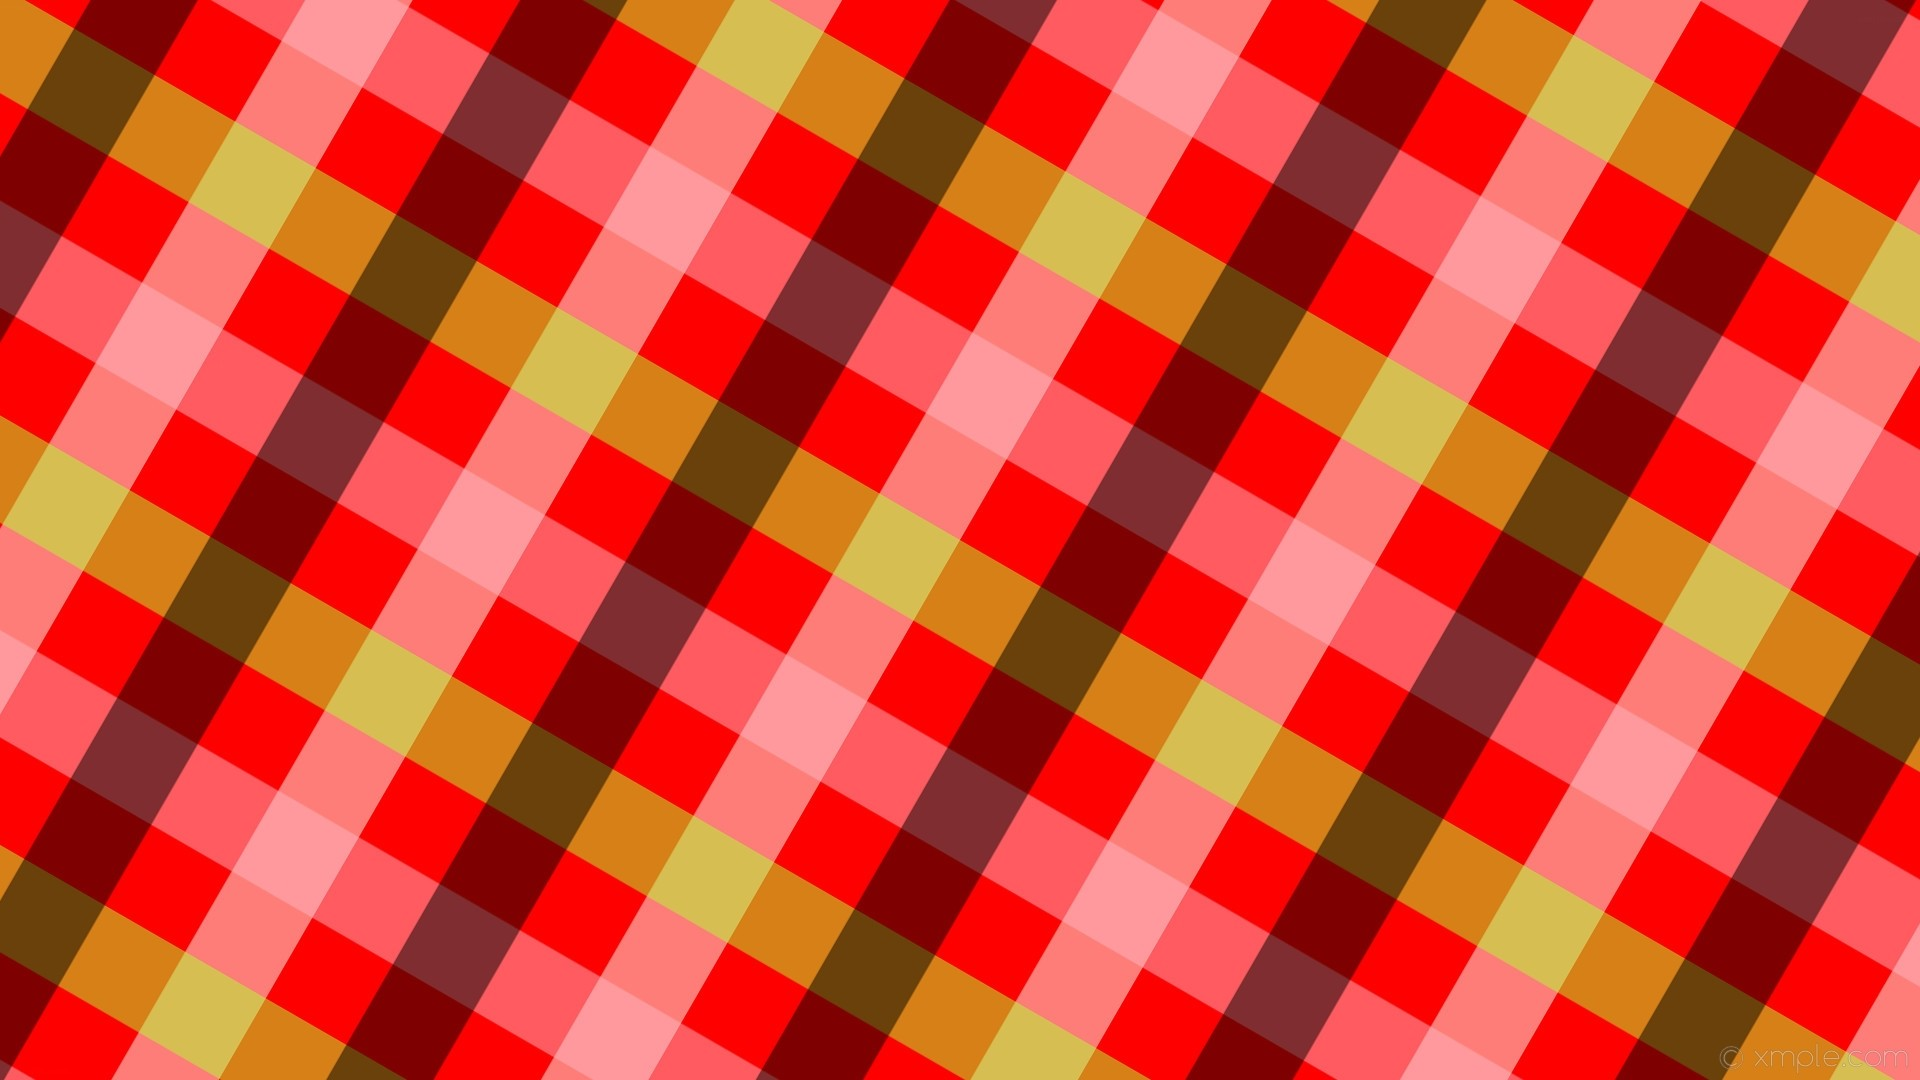 Plaid Background Wallpaper